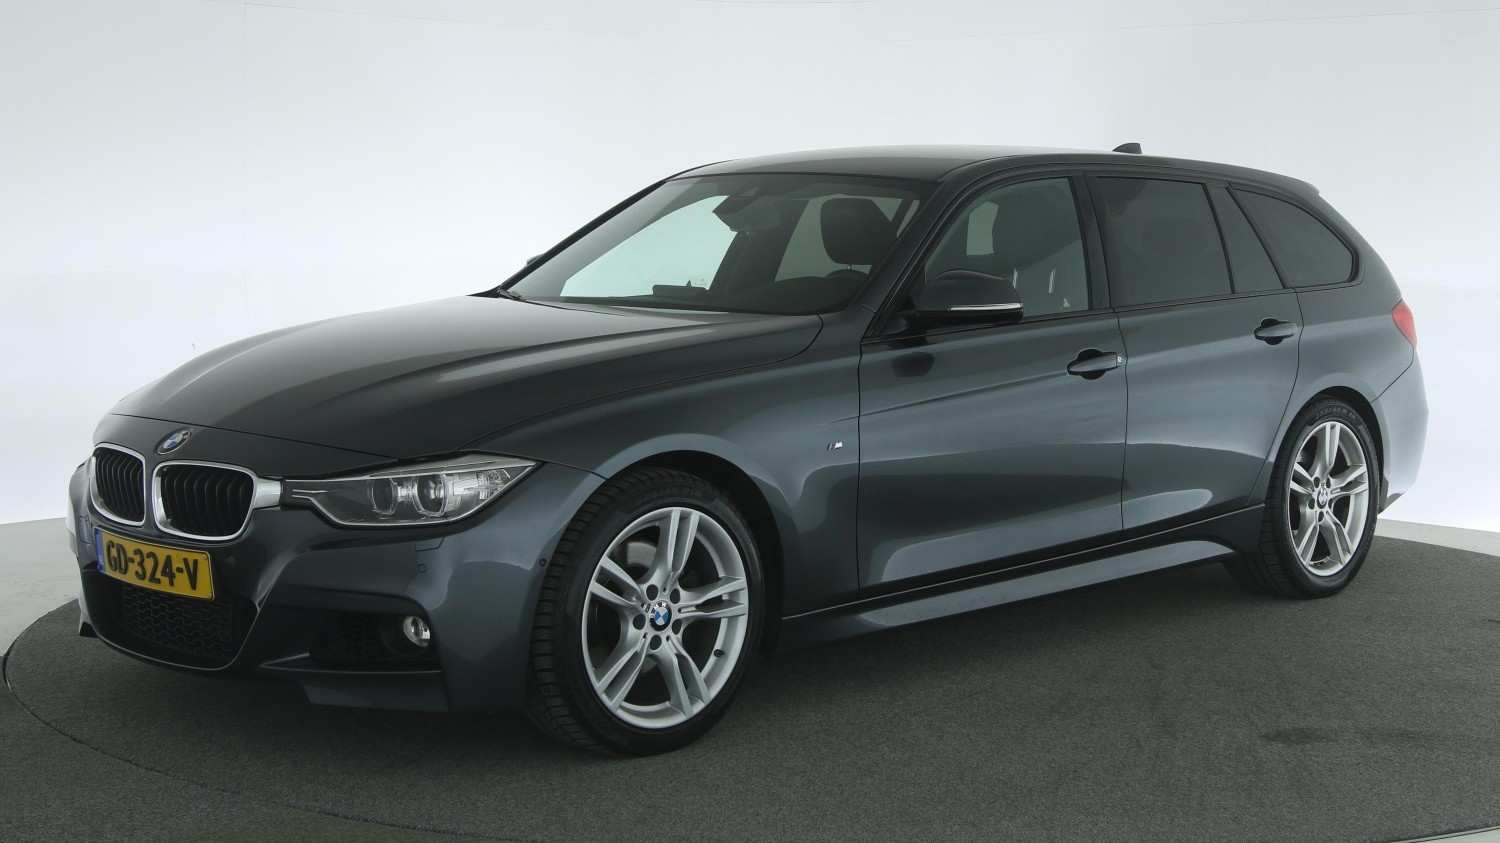 BMW 3-serie Station 2015 GD-324-V 1